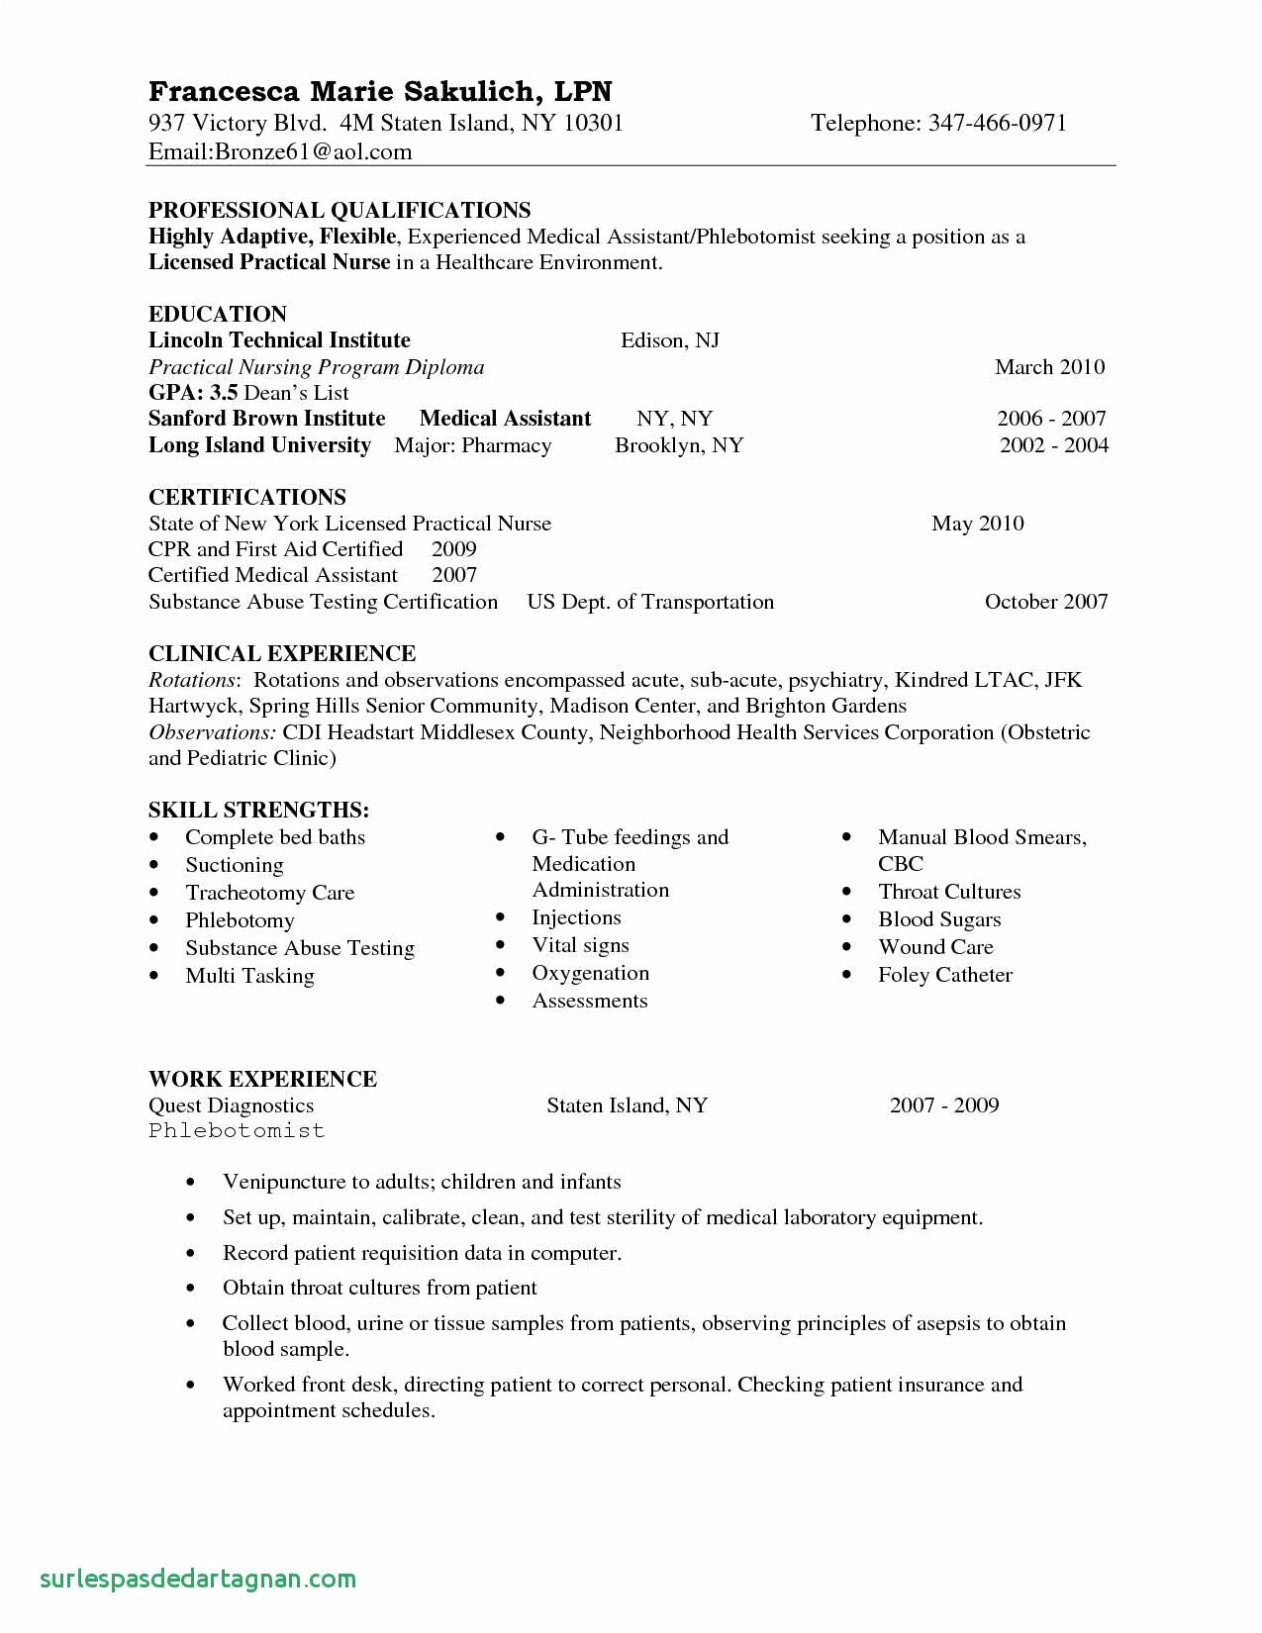 student nurse resume template example-Awesome New Grad Nursing Resume Template 20-r